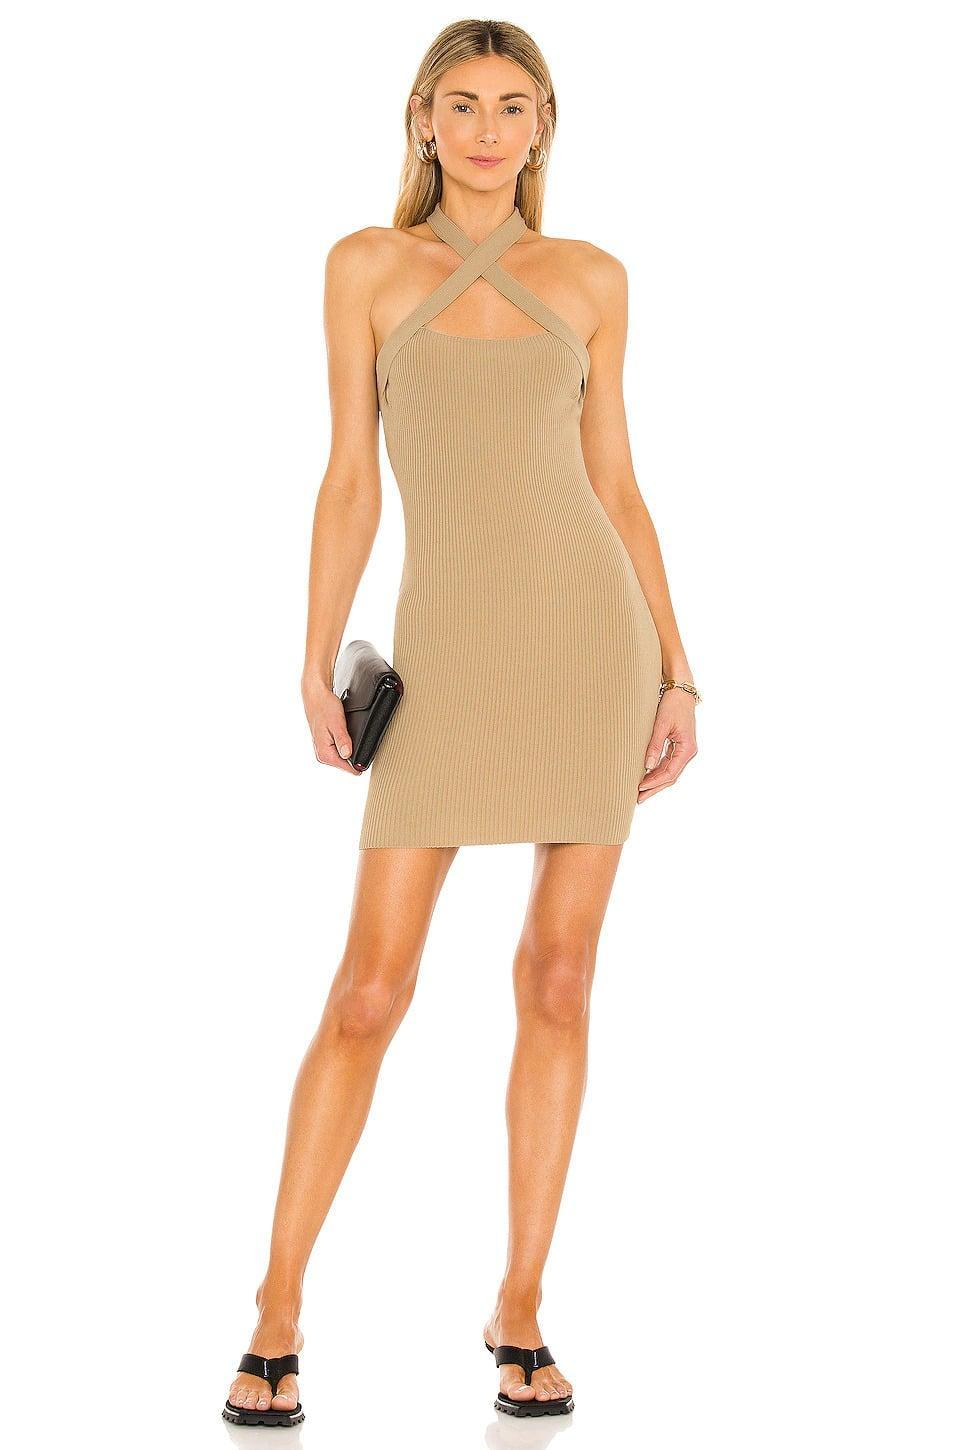 <p>The <span>NBD Yvette Halter Dress in Taupe</span> ($90, originally $128) is such a stunning dress that you can wear to a swanky rooftop bar. The halter neckline adds a sexy touch to the dress. </p>